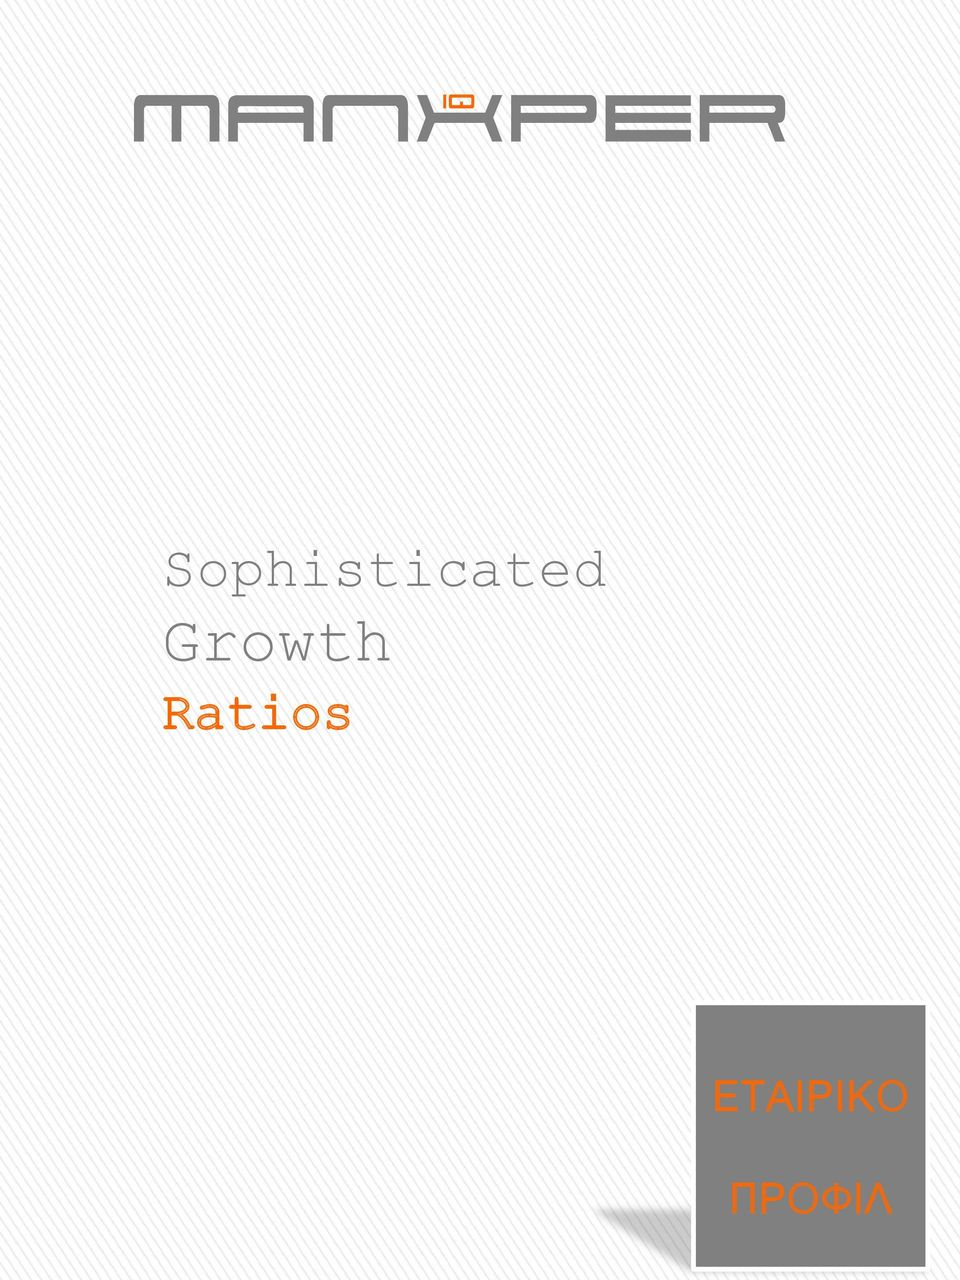 Growth Ratios